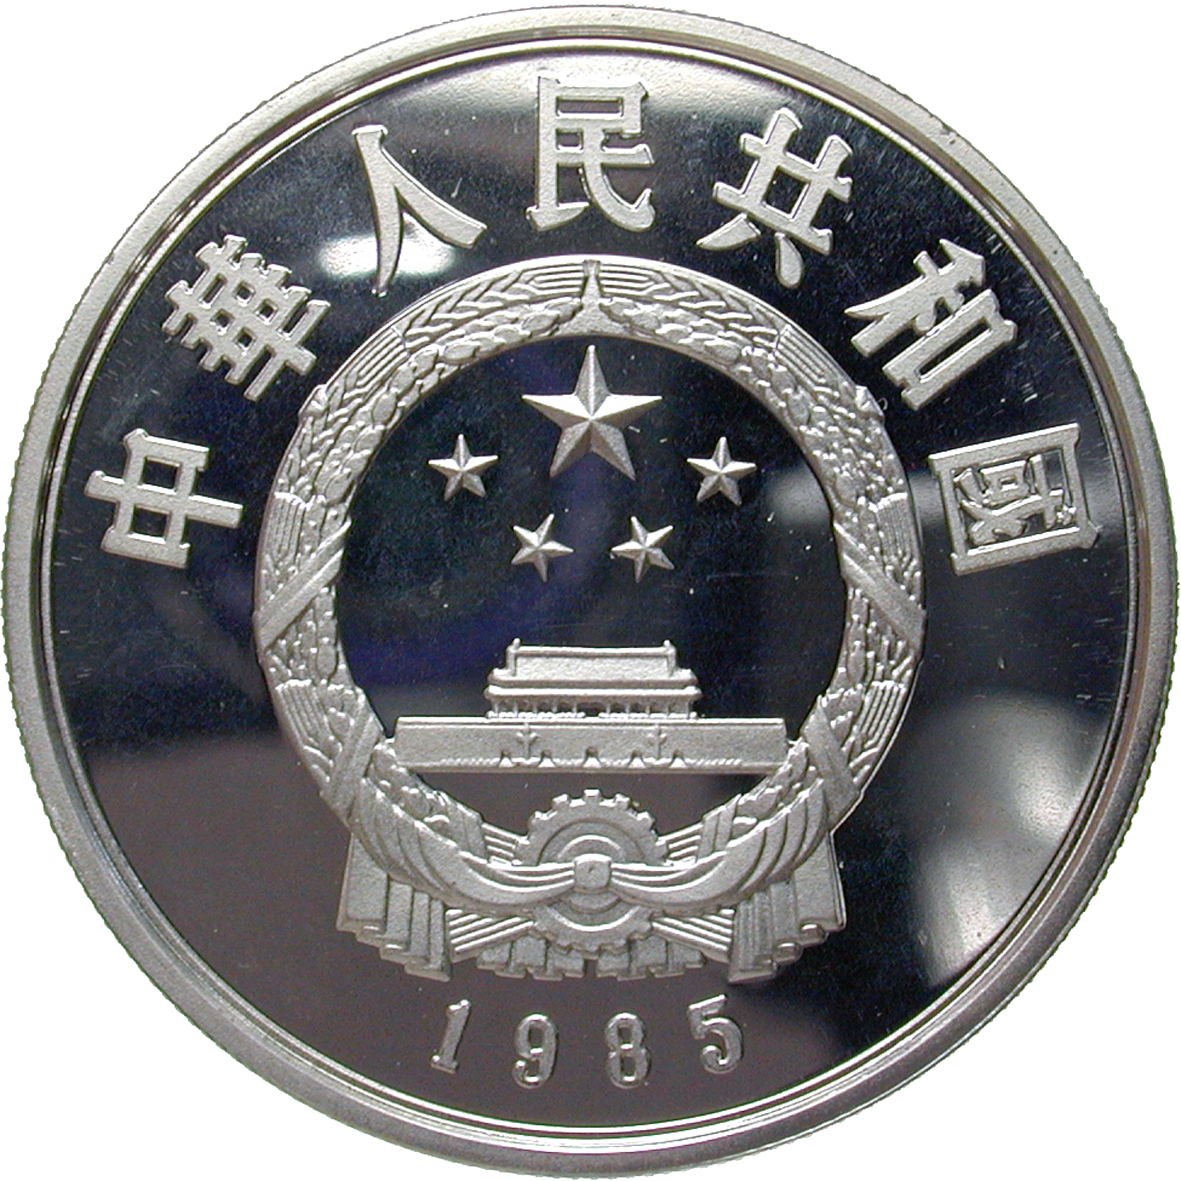 People's Republic of China, 5 Yuan 1985 (obverse)